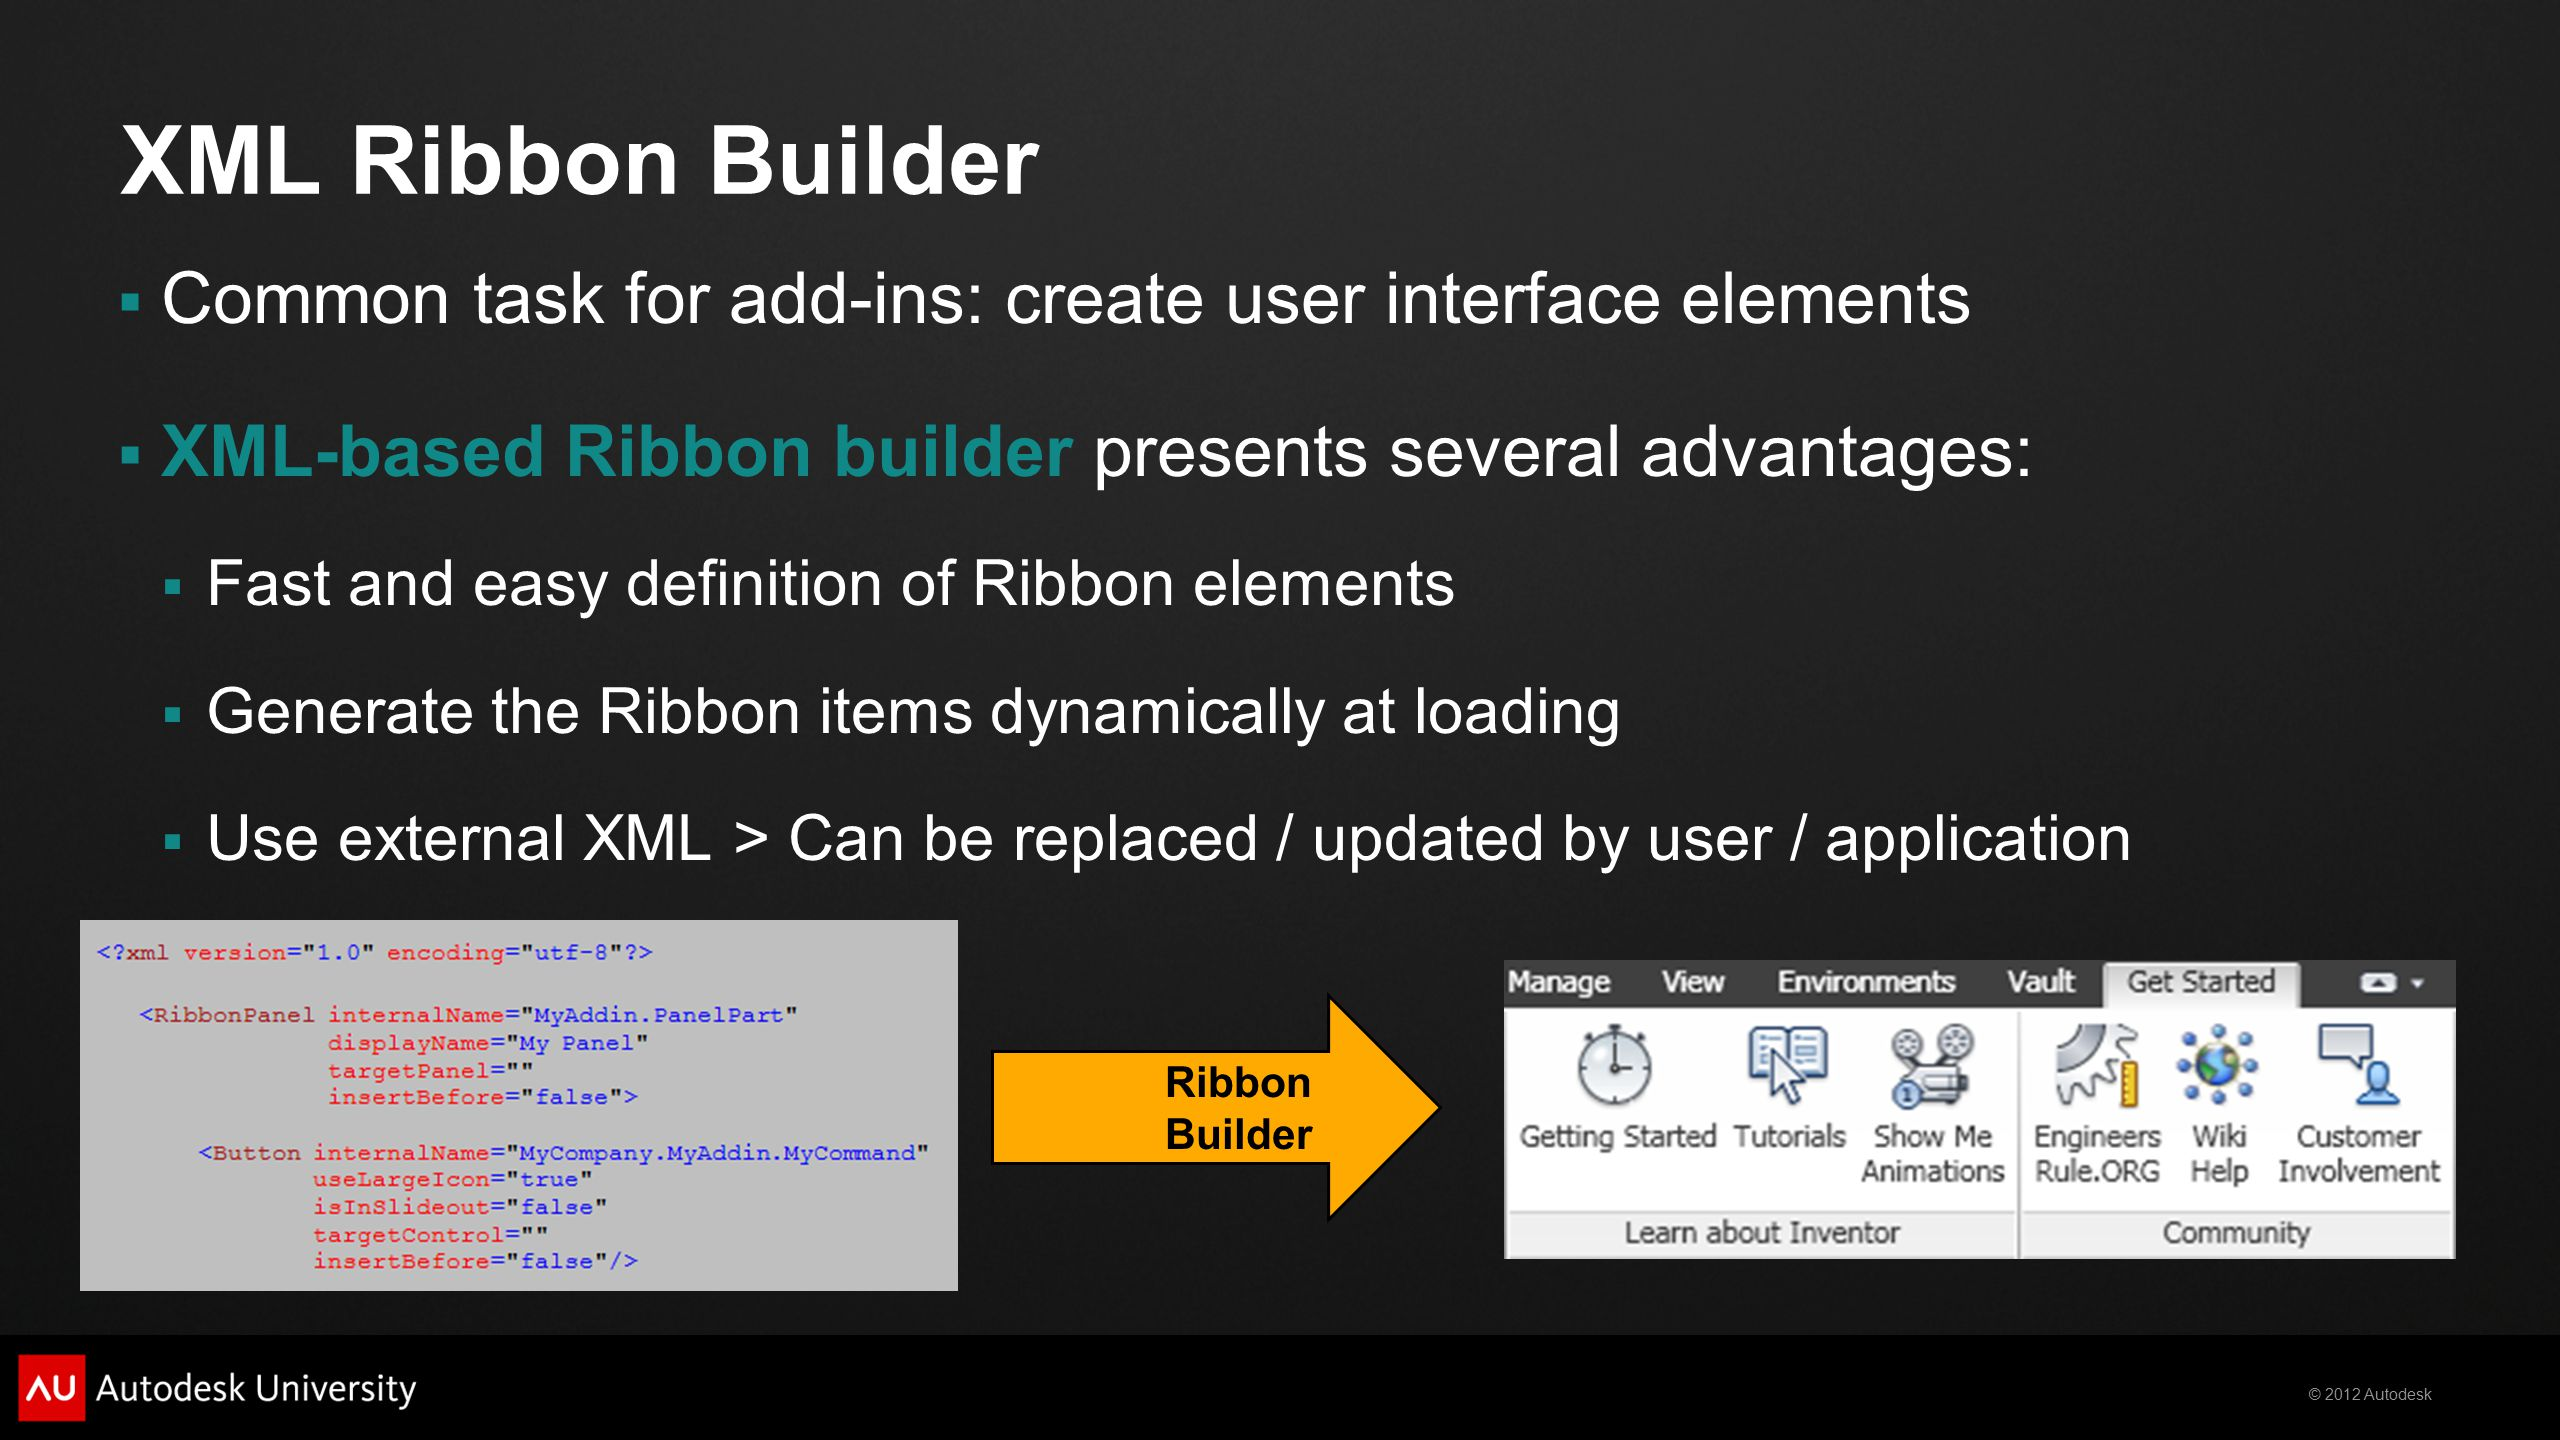 XML Ribbon Builder Common task for add-ins: create user interface elements. XML-based Ribbon builder presents several advantages: